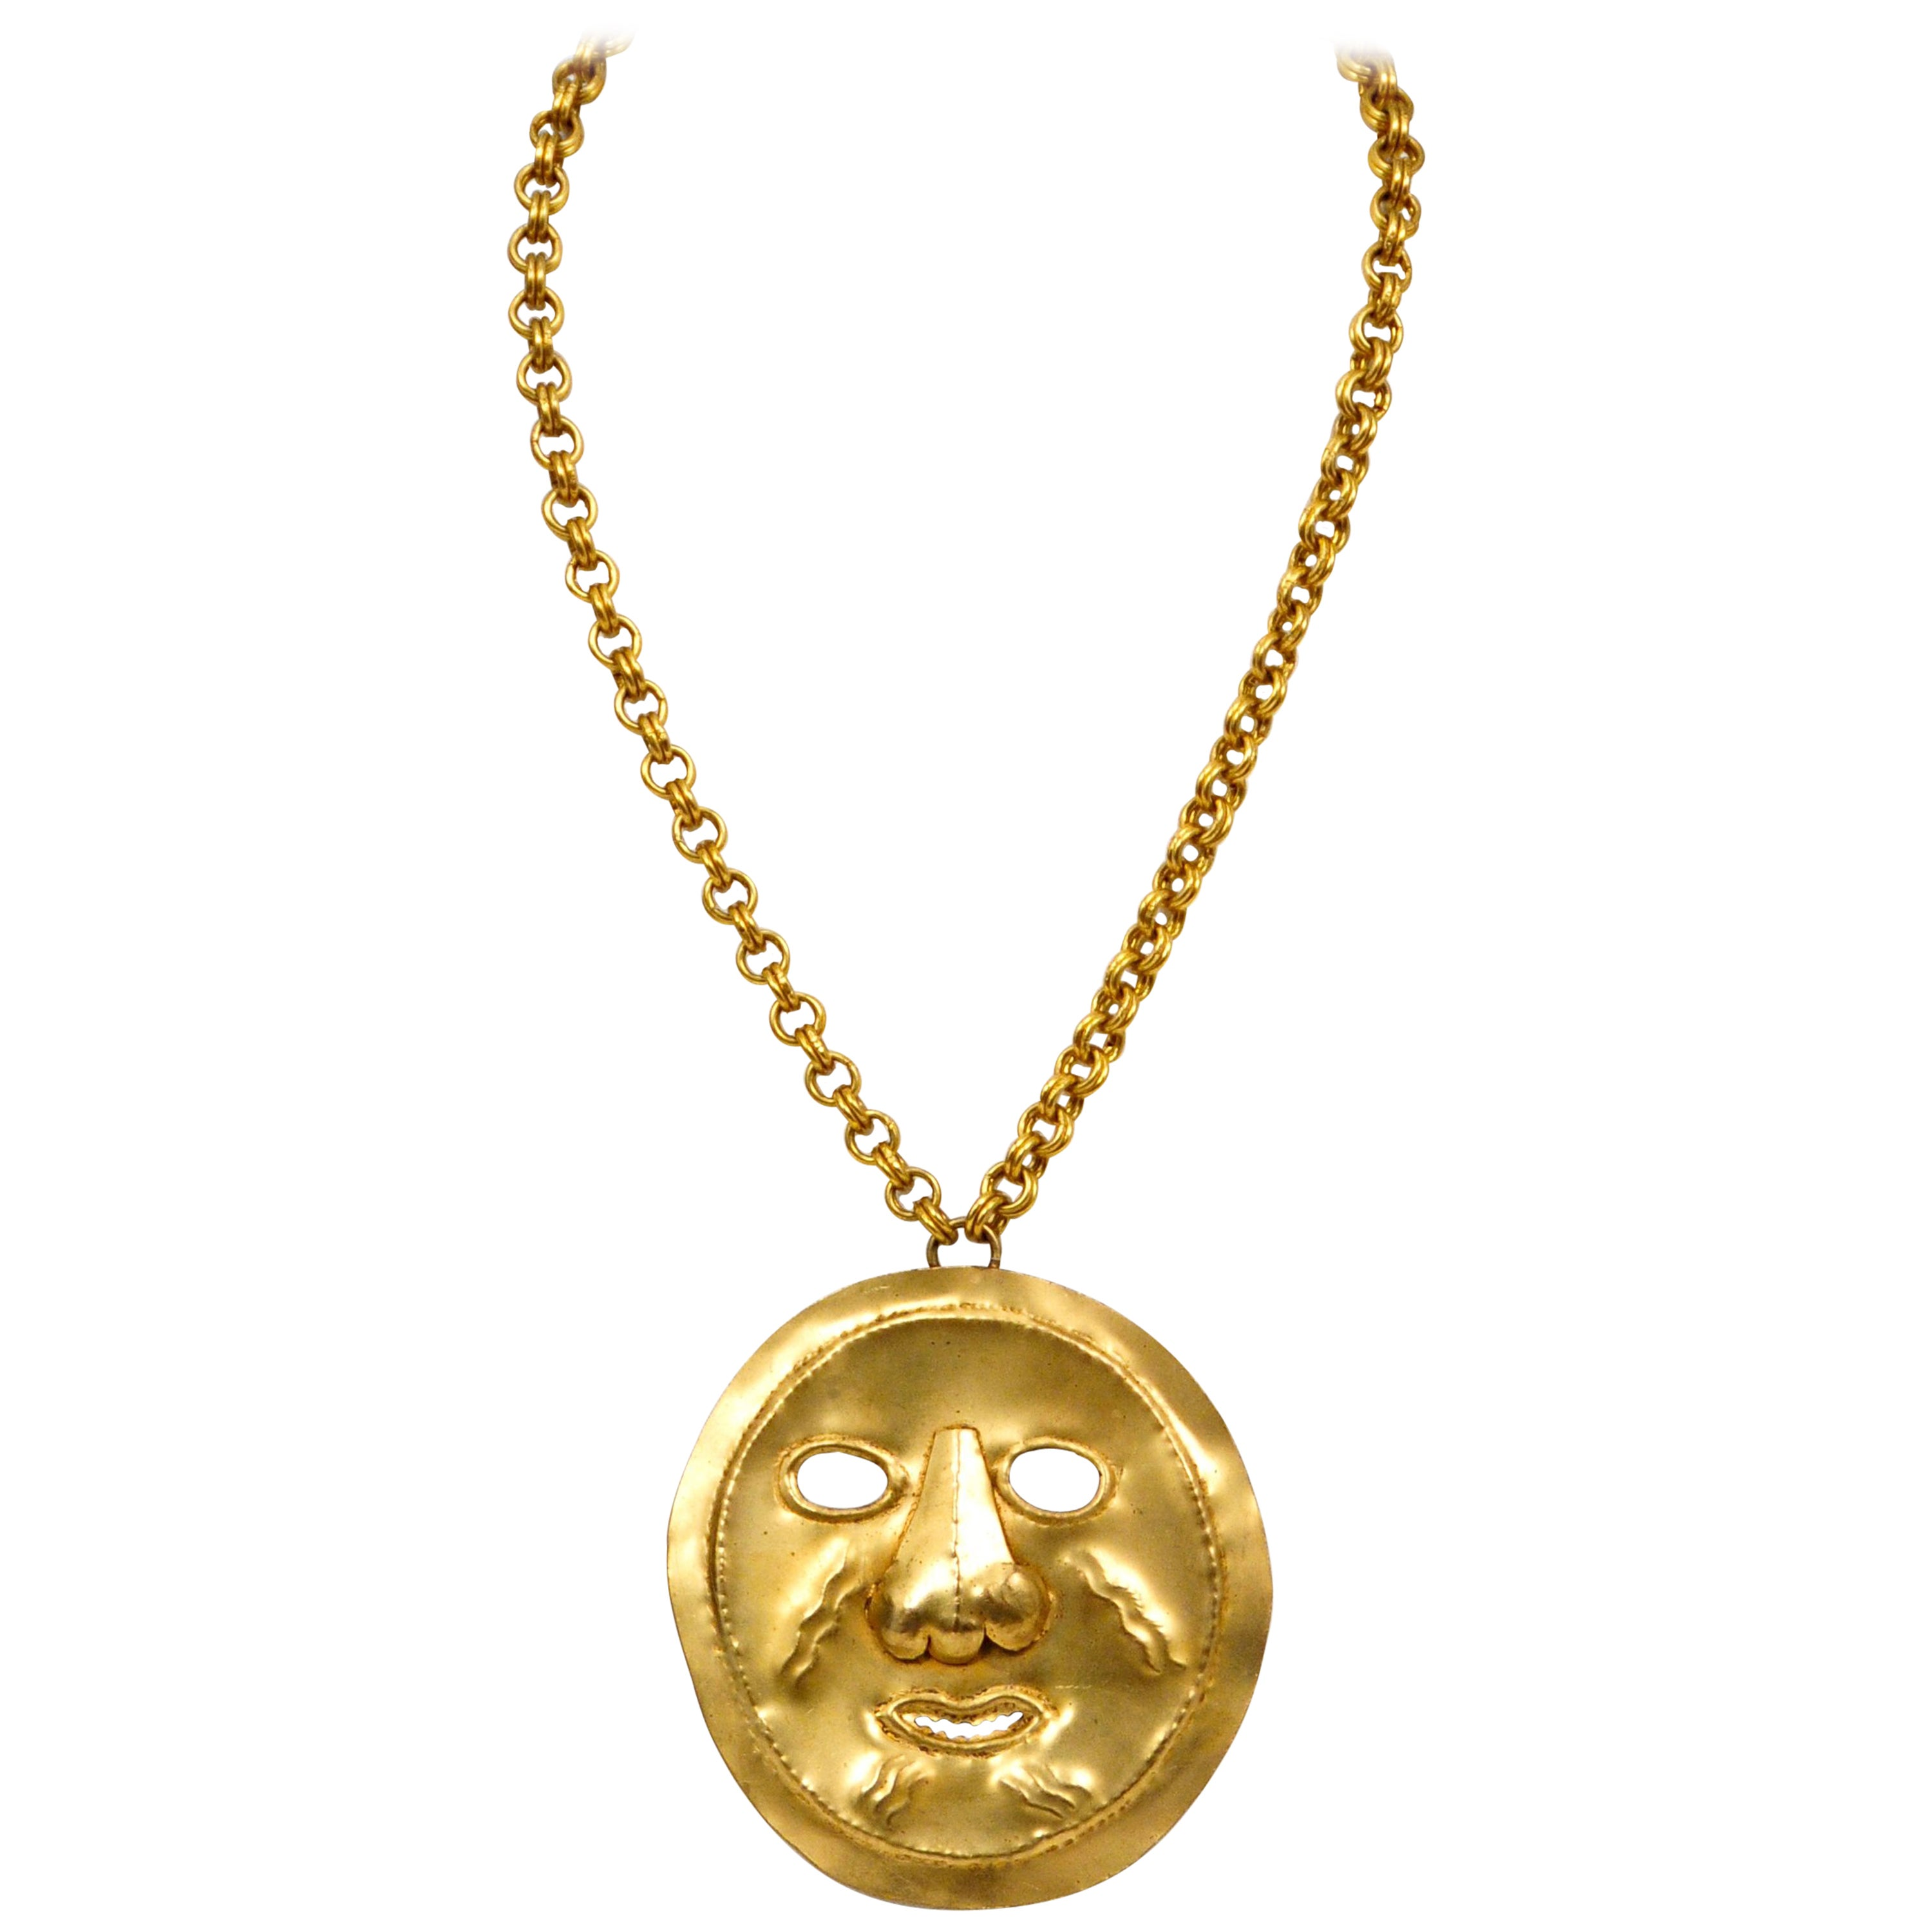 044dbb0f1dc Yves Saint Laurent Pre Columbian Gold Metal Mask Pensant Necklace For Sale  at 1stdibs